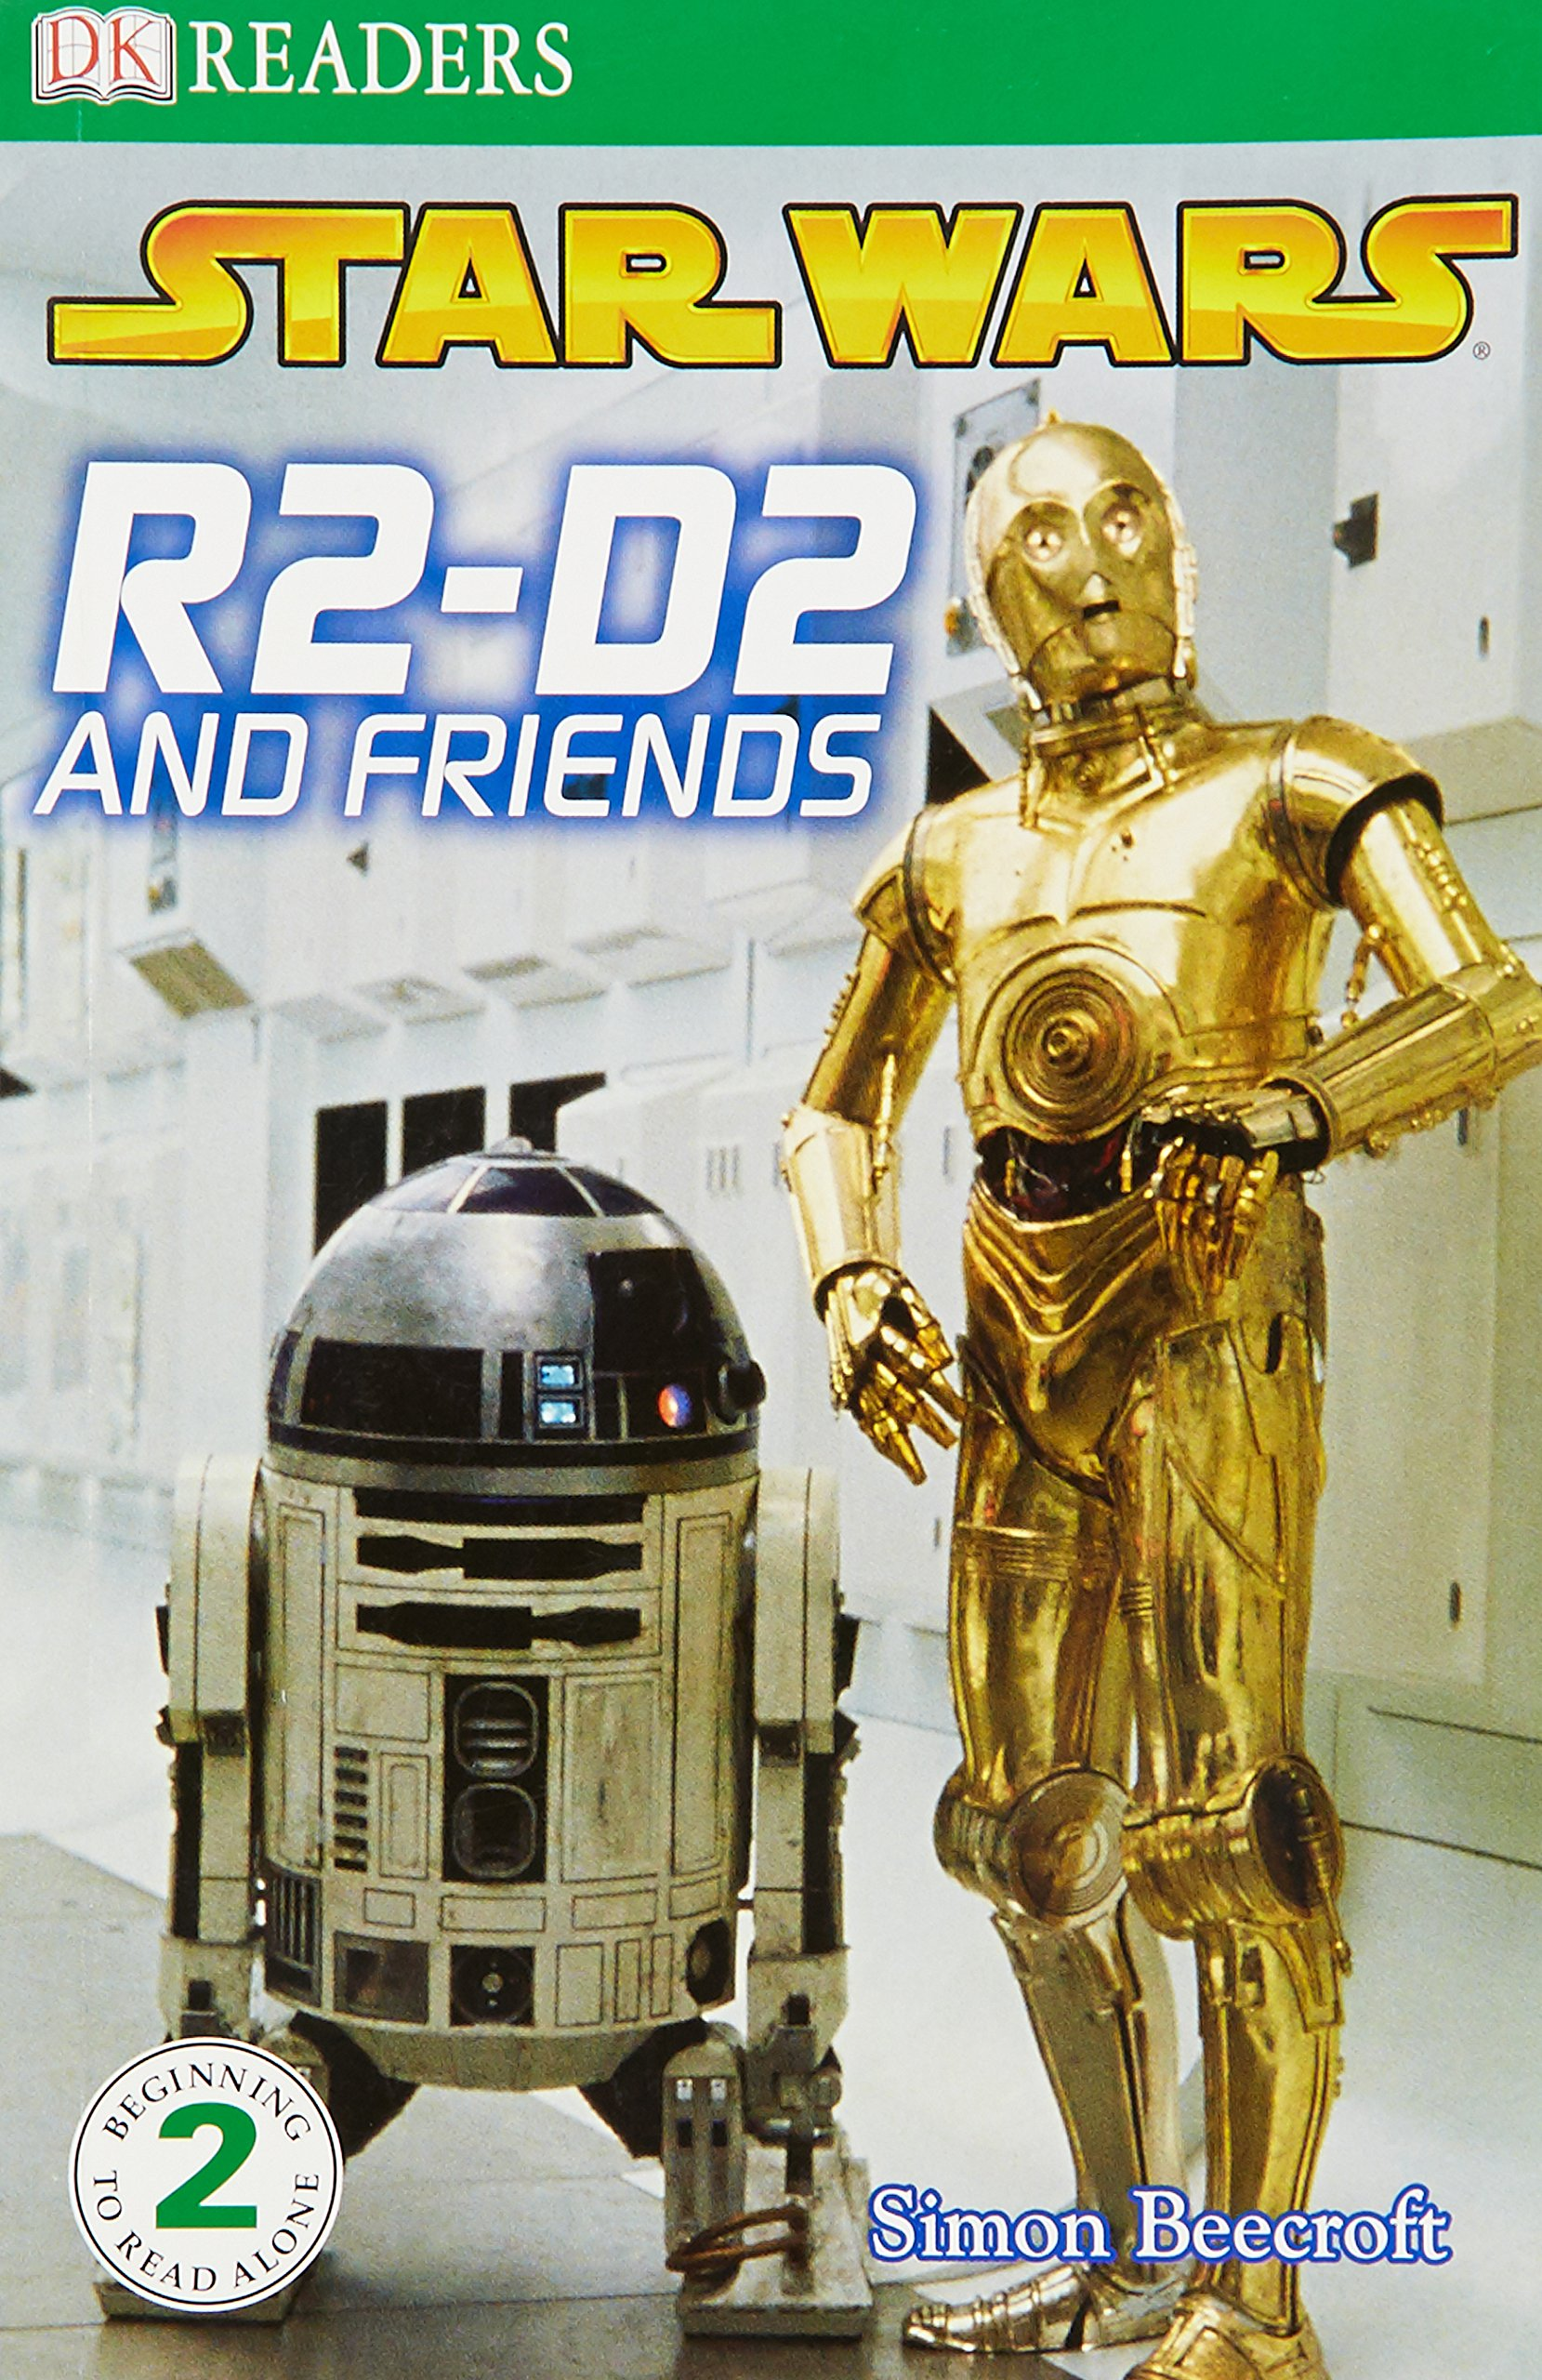 Star Wars R2-D2 and Friends (DK Reader Level 2) PDF